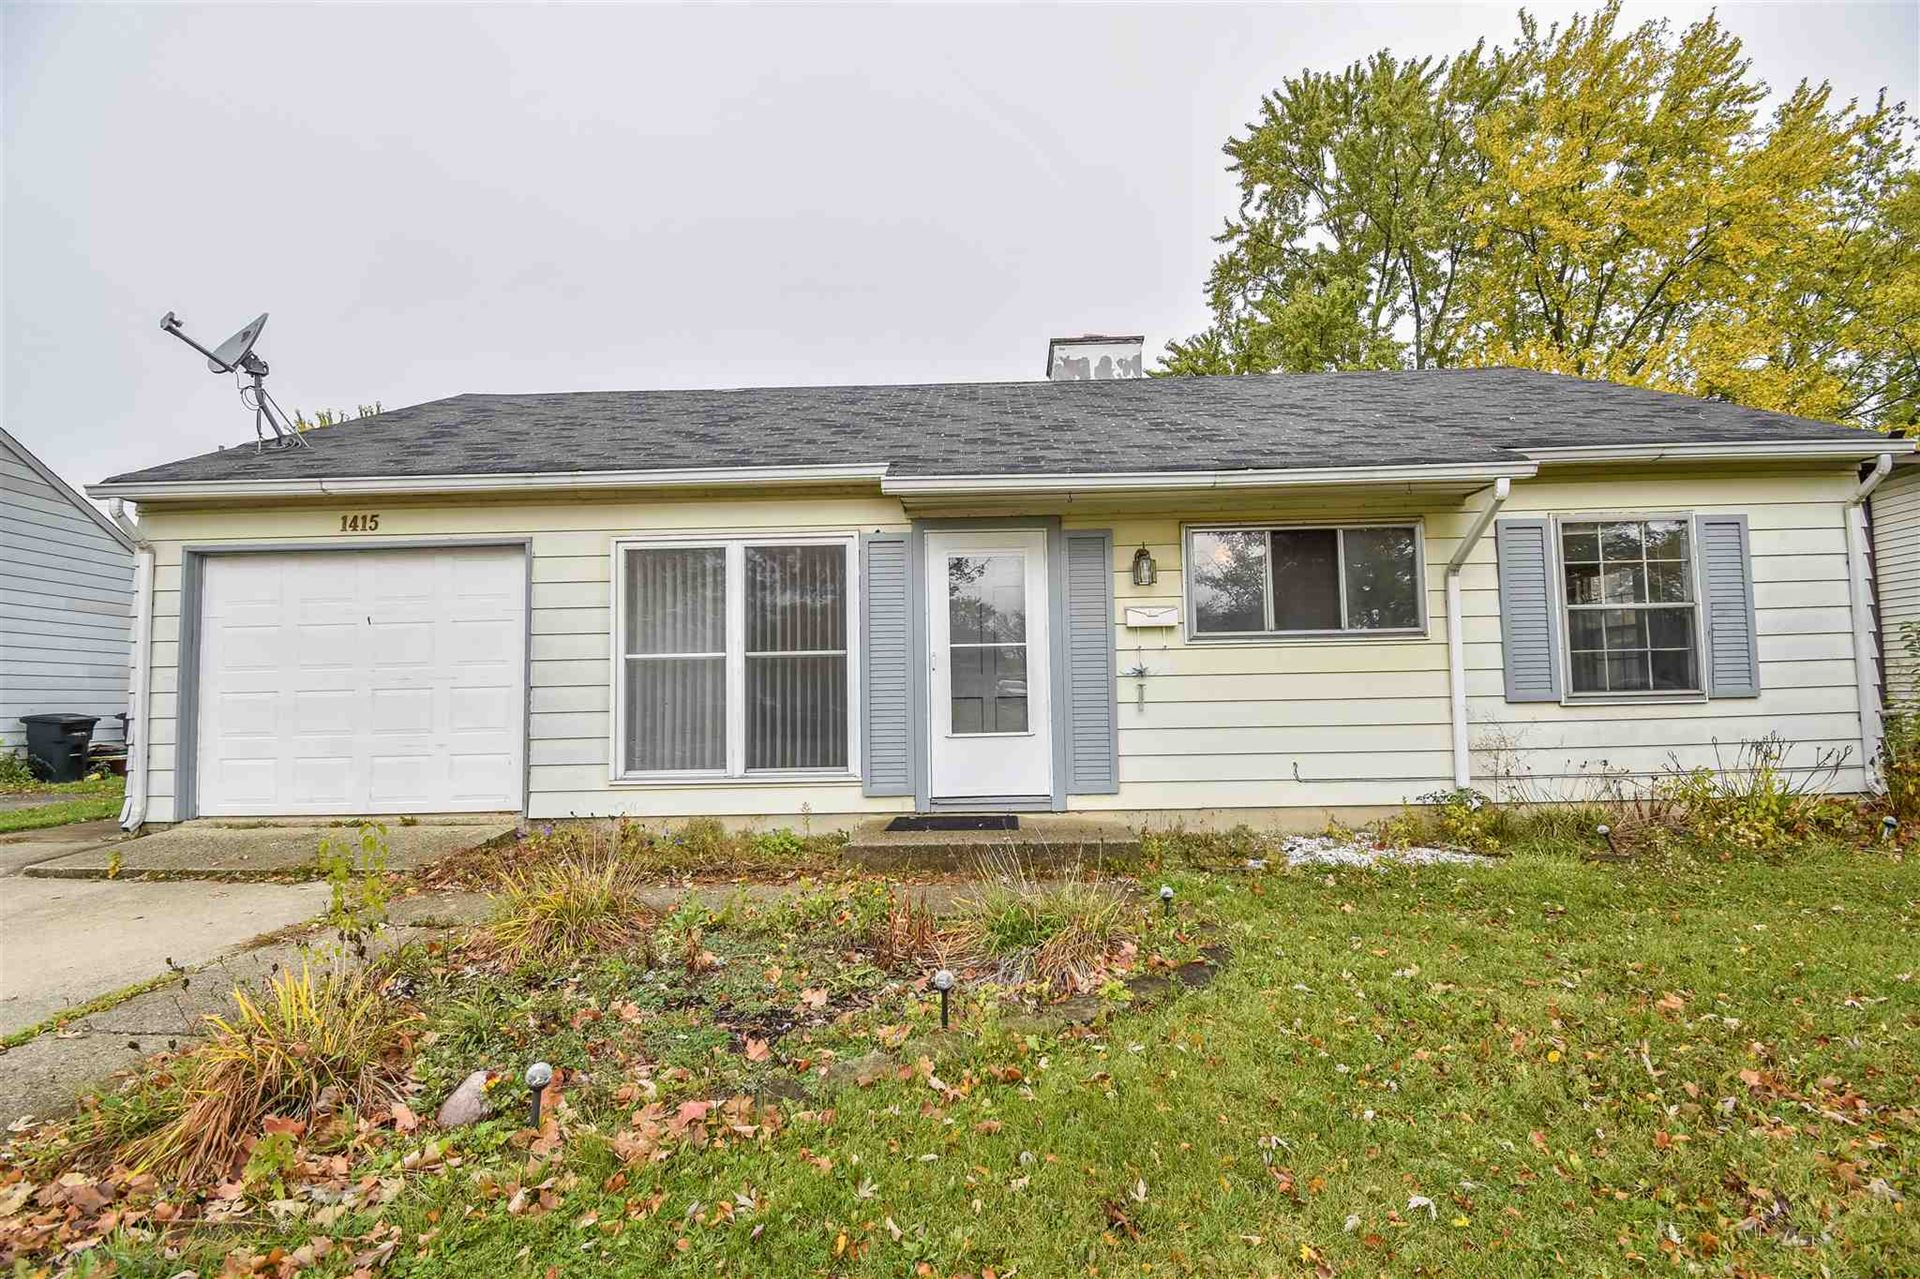 1415 Sycamore Drive, Fort Wayne, IN 46825 - #: 202042869